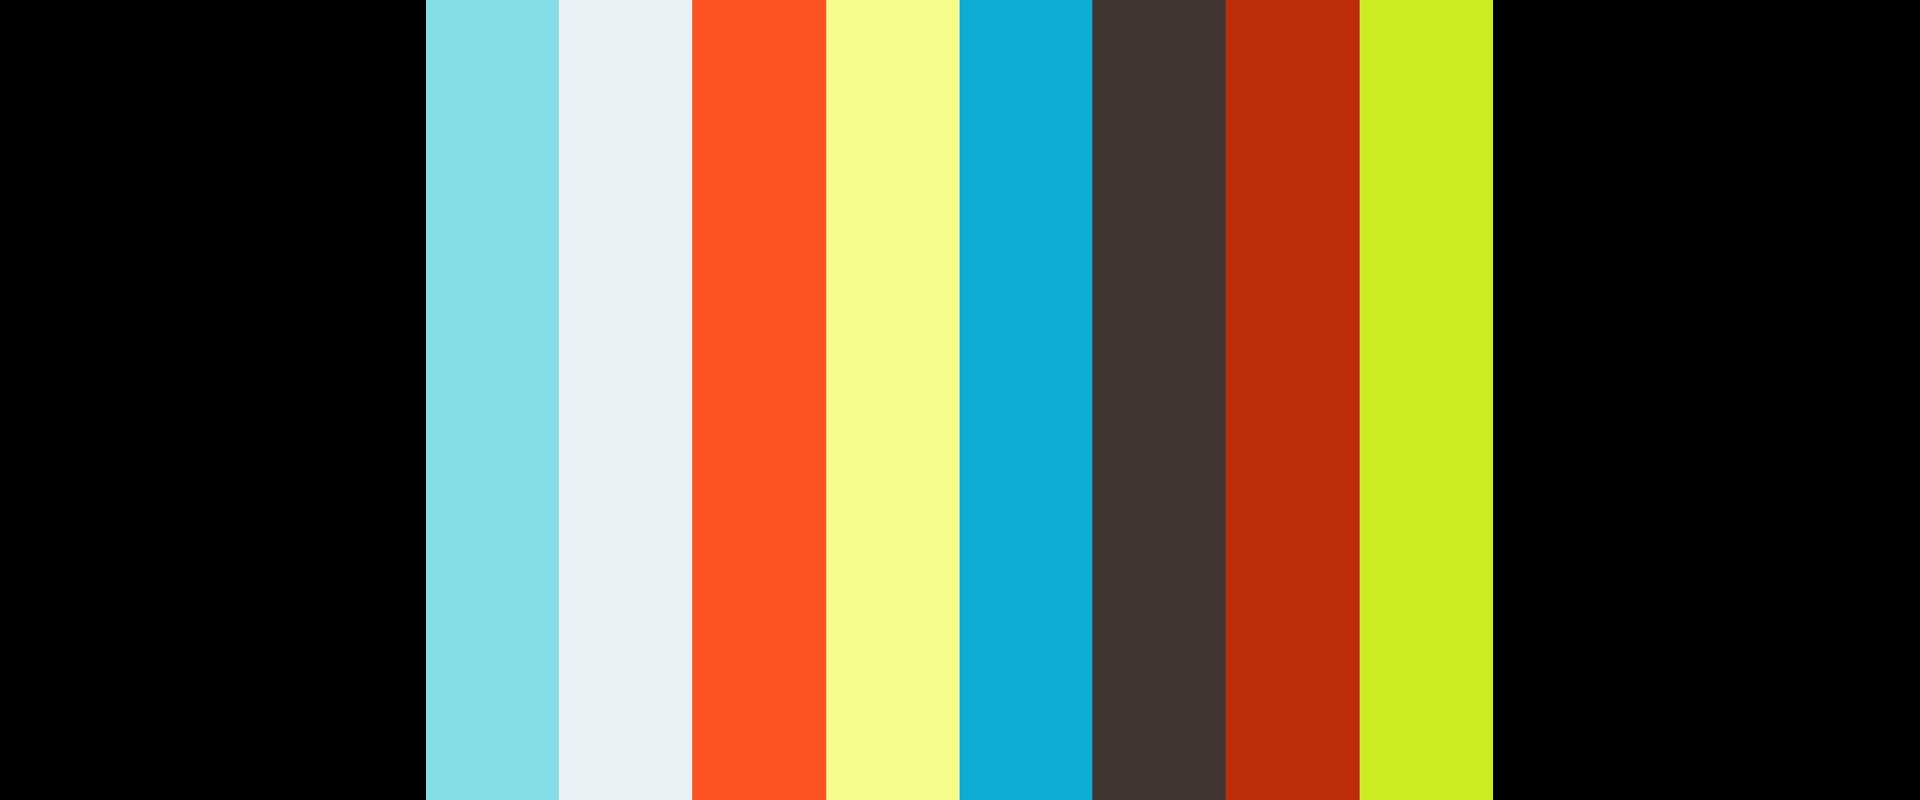 SWIMRUNMAN GRAND LAC DE LAFFREY